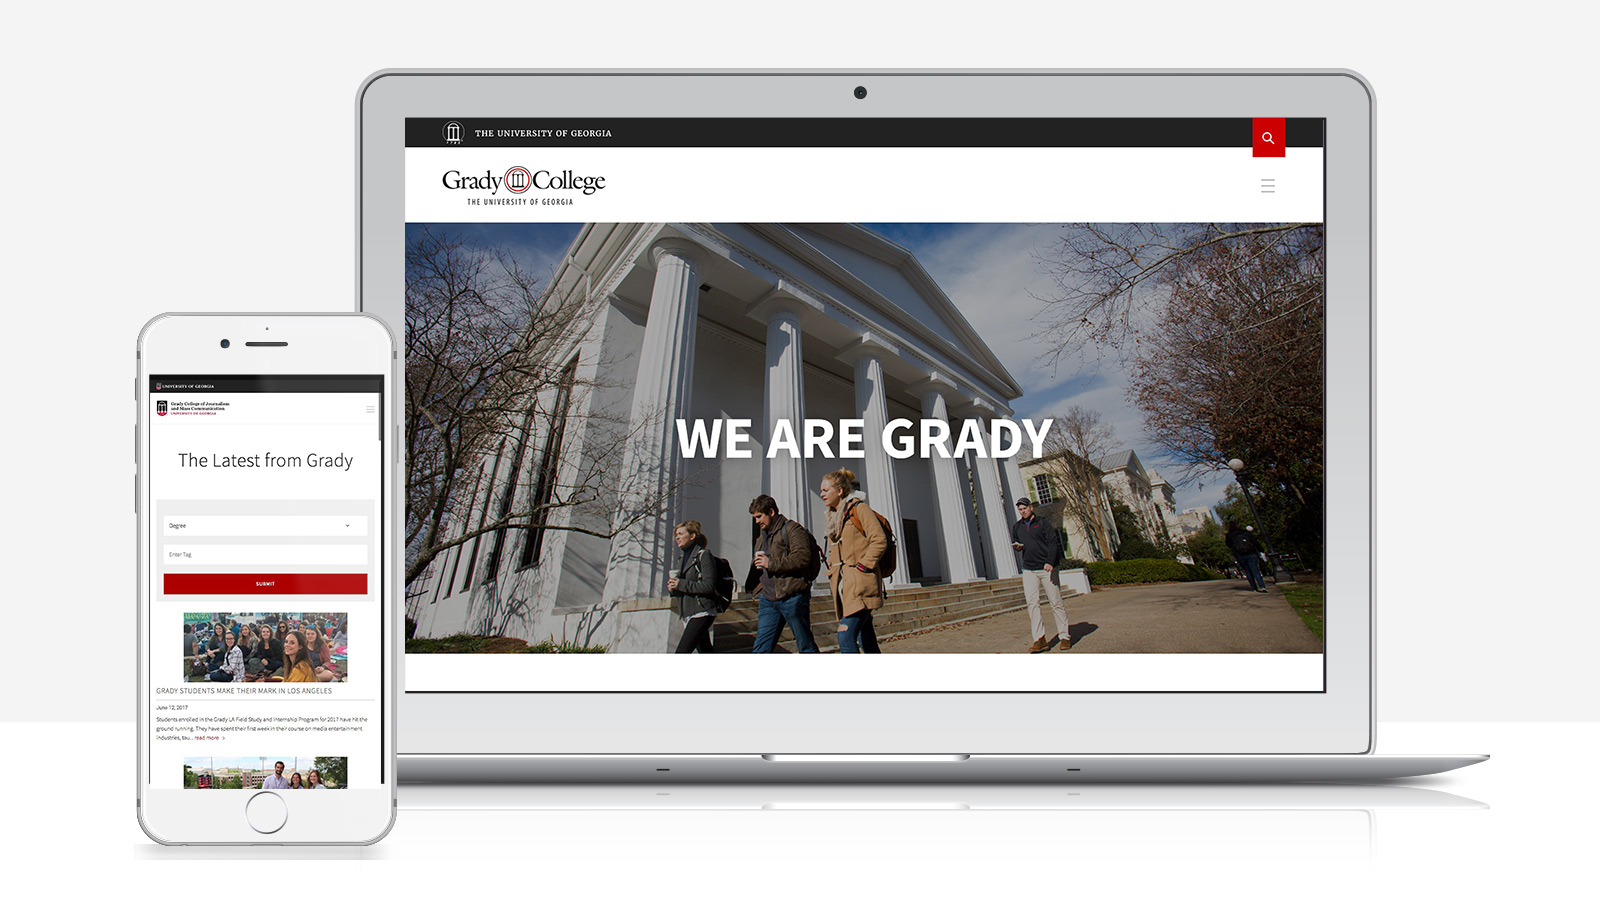 University of Georgia - Grady College website on a computer and mobile device.